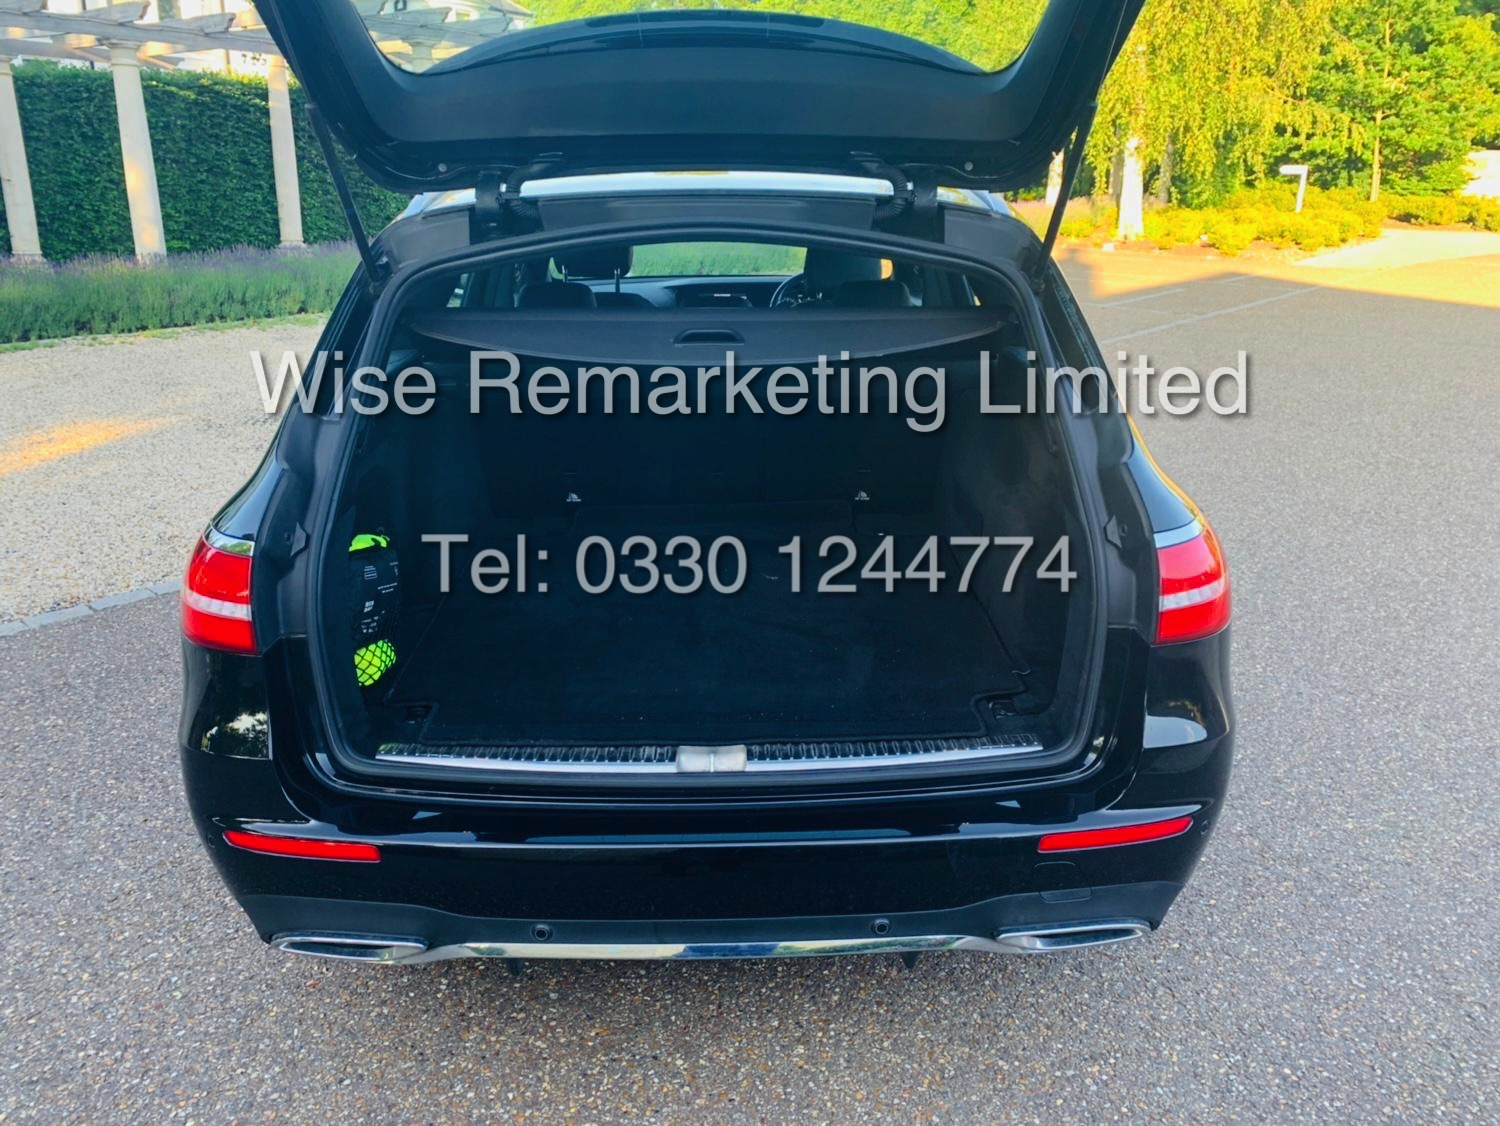 MERCEDES E CLASS ESTATE E220D AMG LINE 2017 / 9G -TRONIC / *LOW MILES* / 1 OWNER - Image 13 of 42